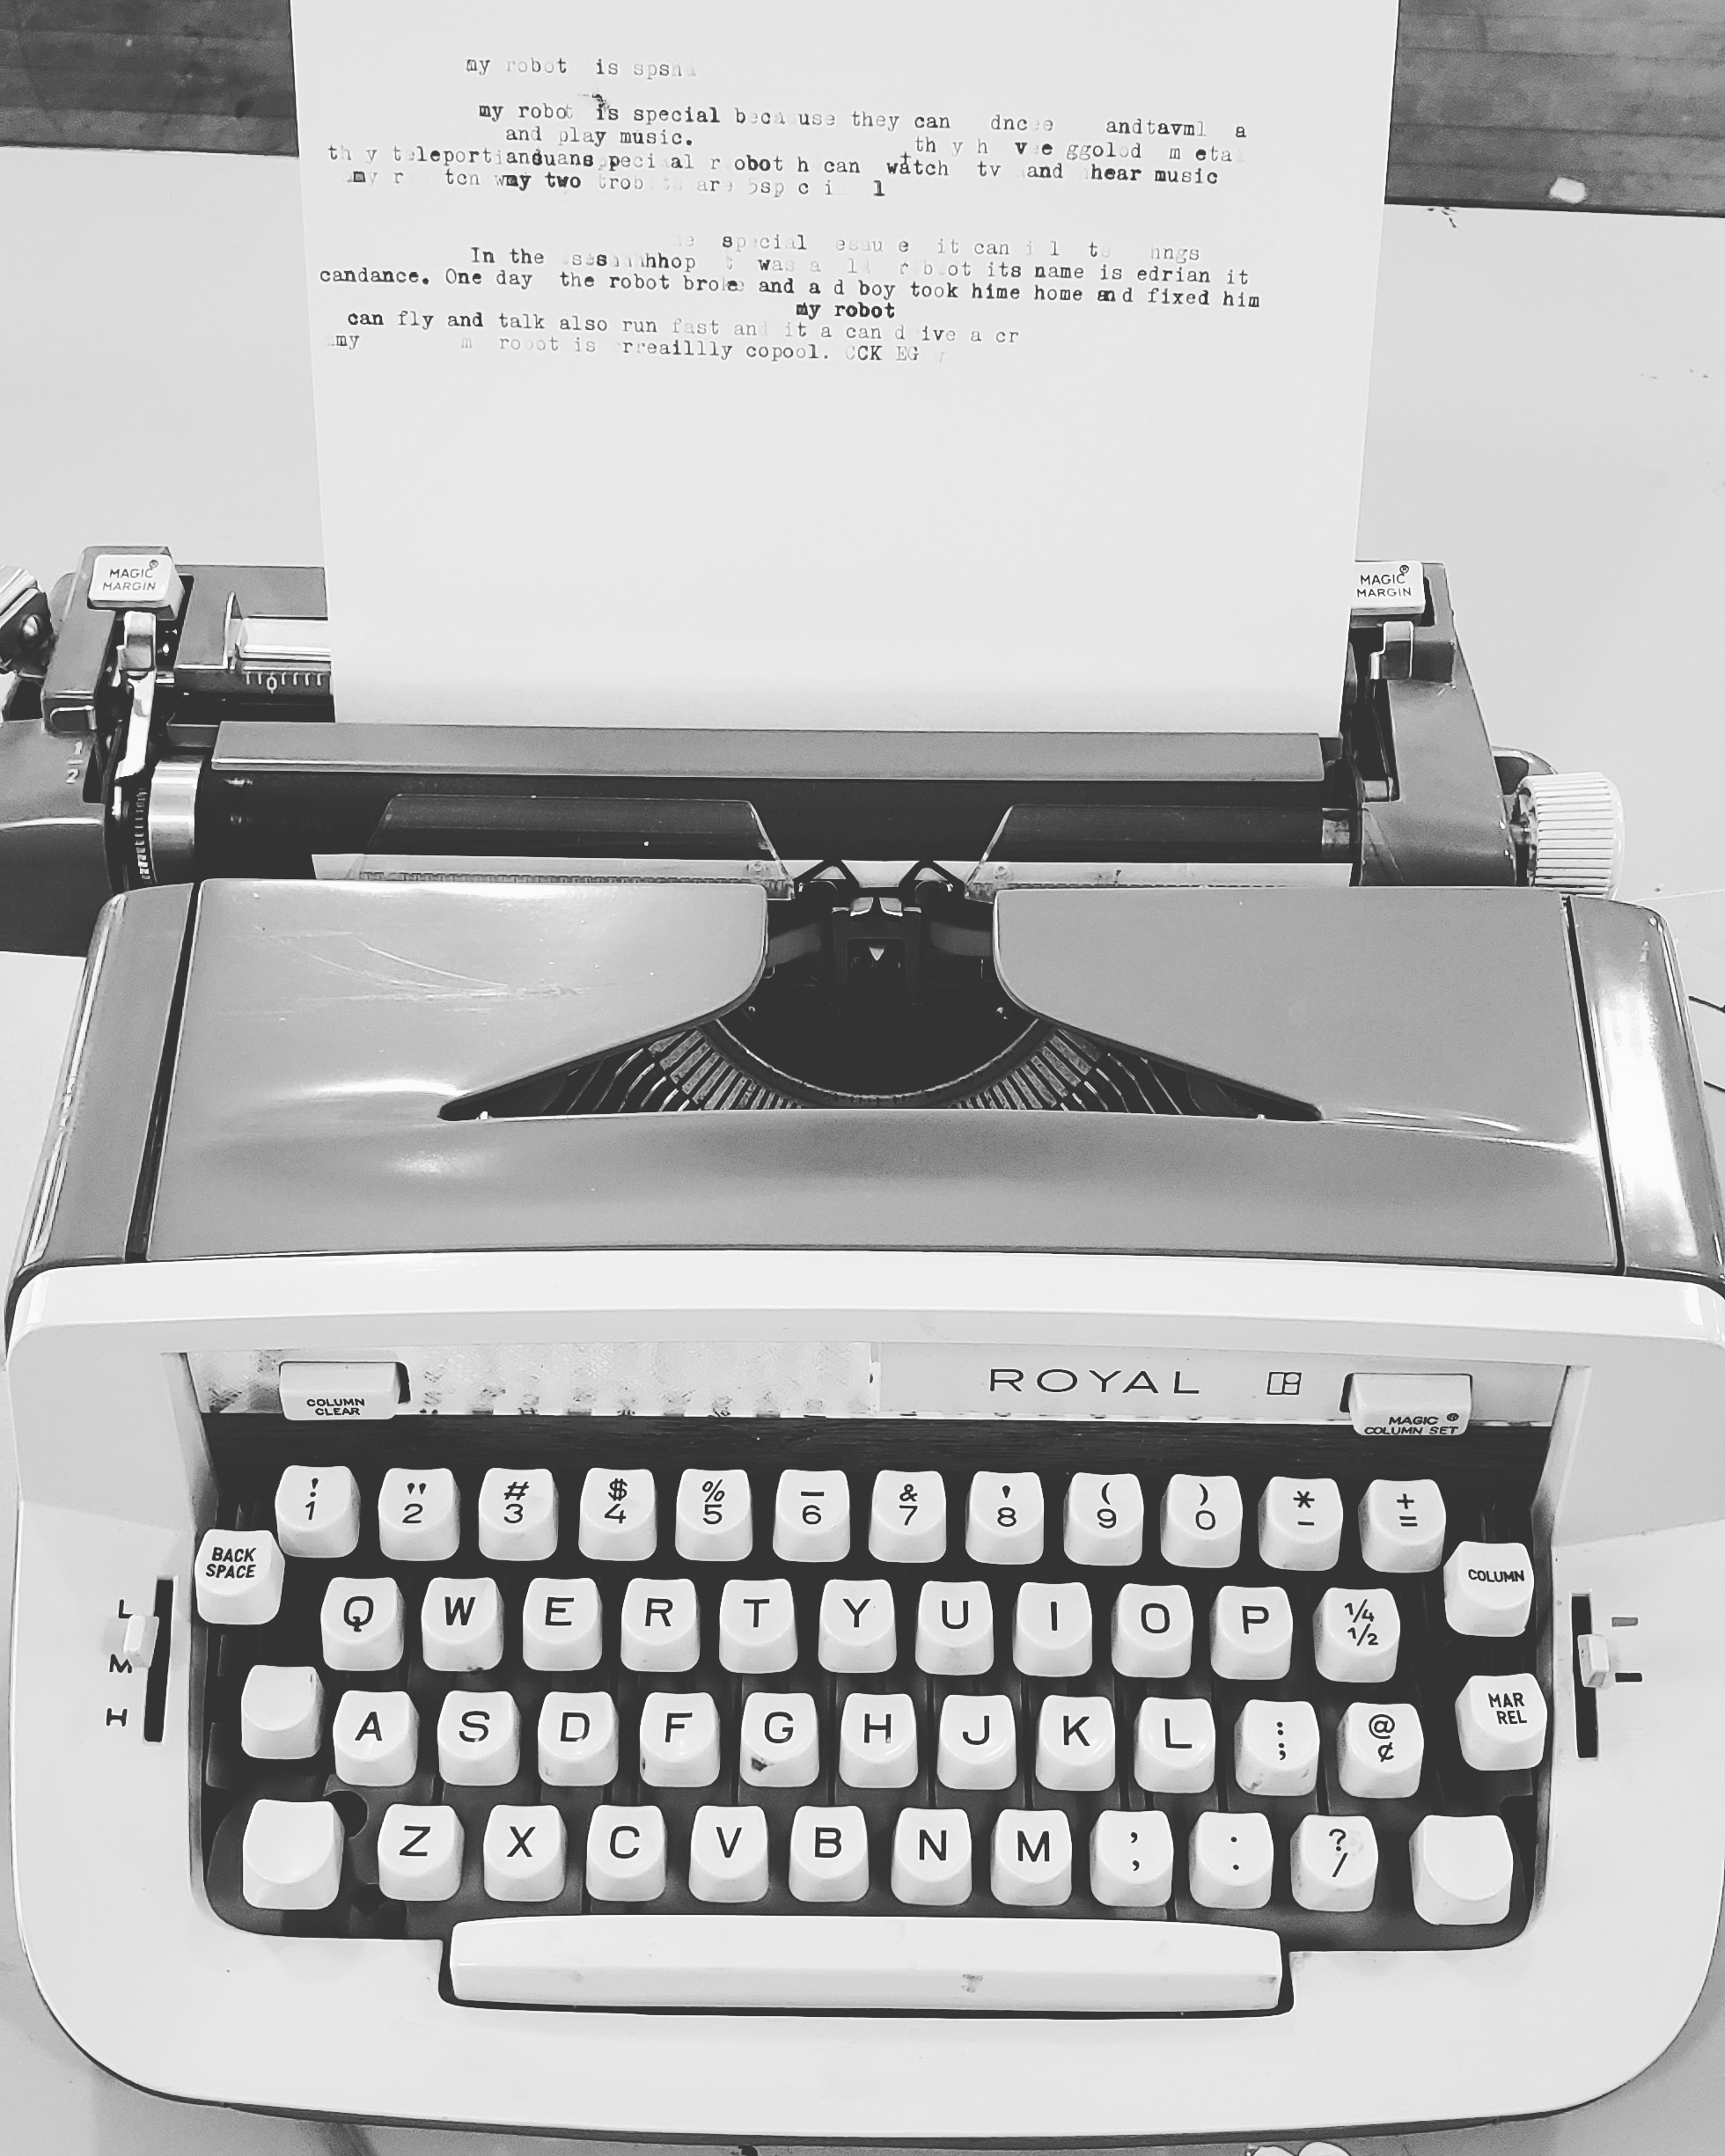 Black and White photo of a 1970s typewriter. A paper with some typing is loaded into the scroll.